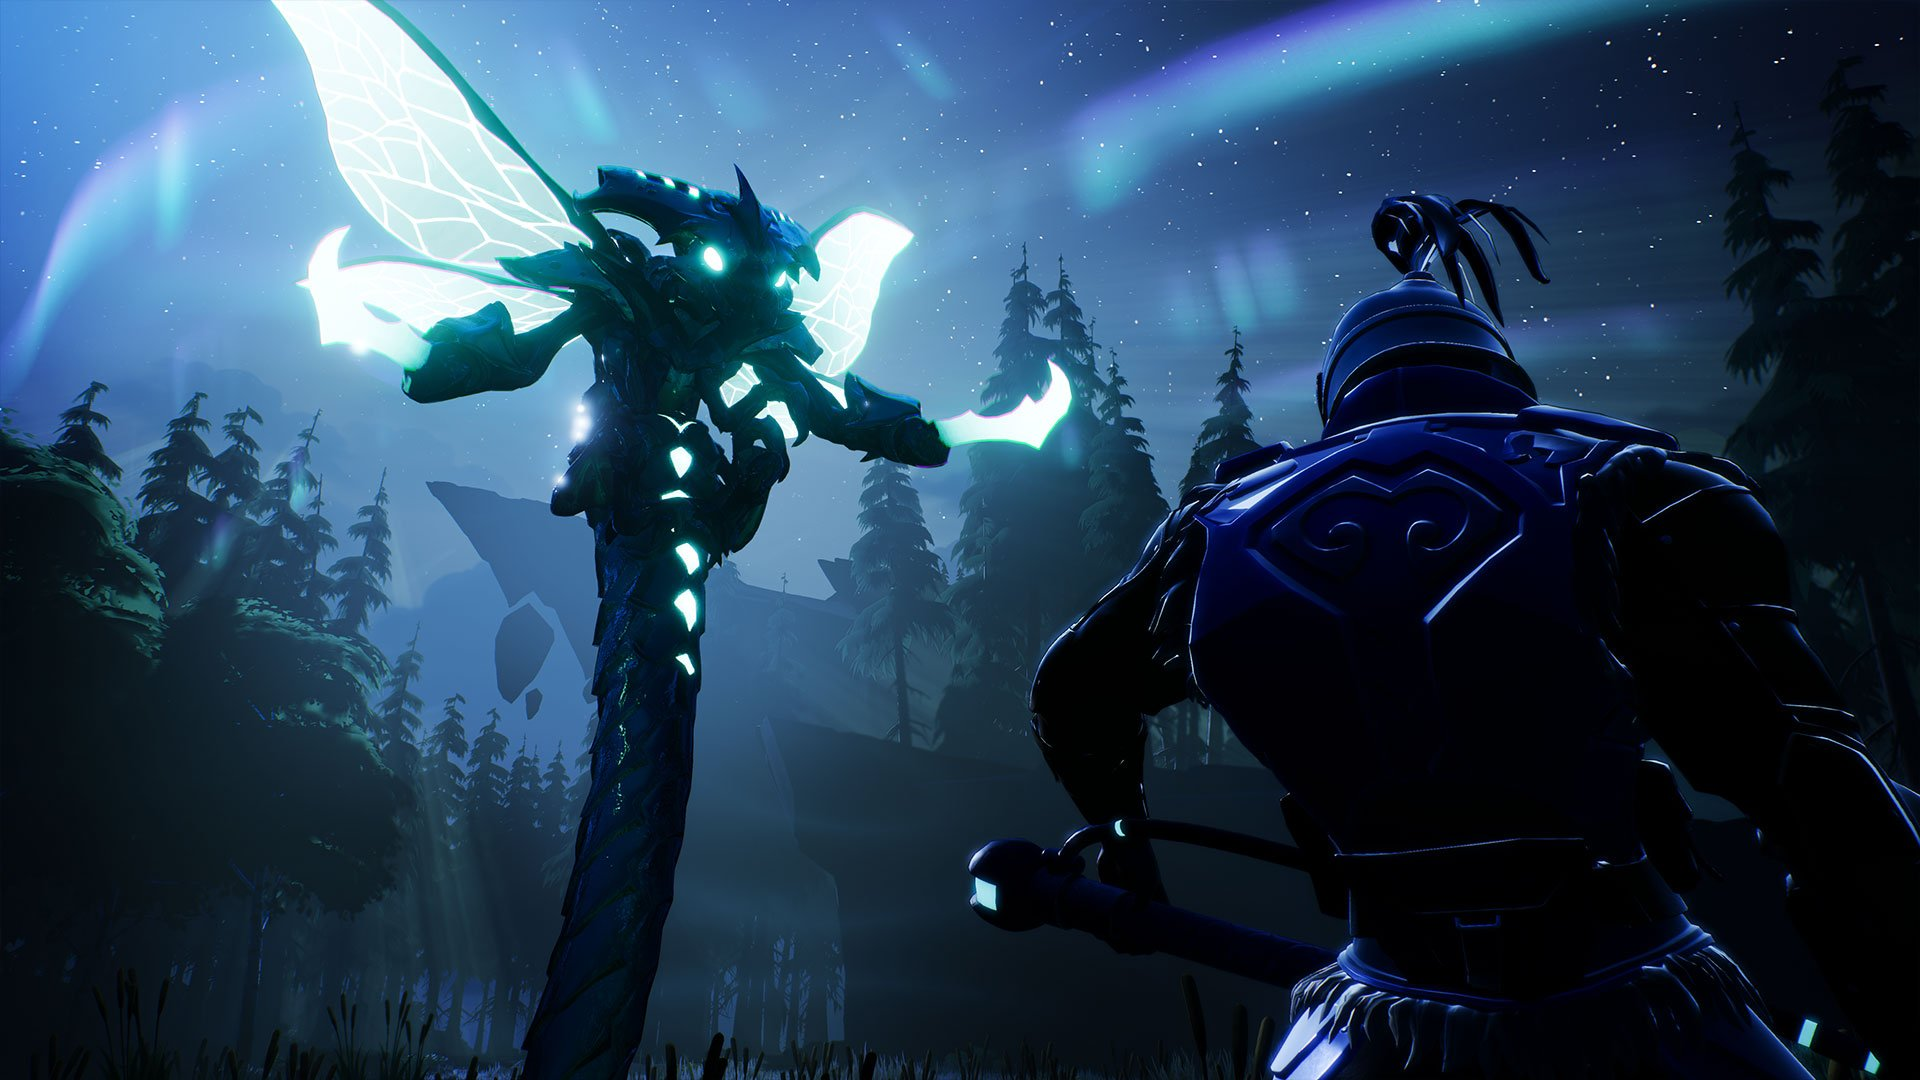 The max Slayer Rank in Dauntless is 50, though you can also increase your Mastery rank for Behemoths and weapons once you've reached the max Slayer Rank cap.